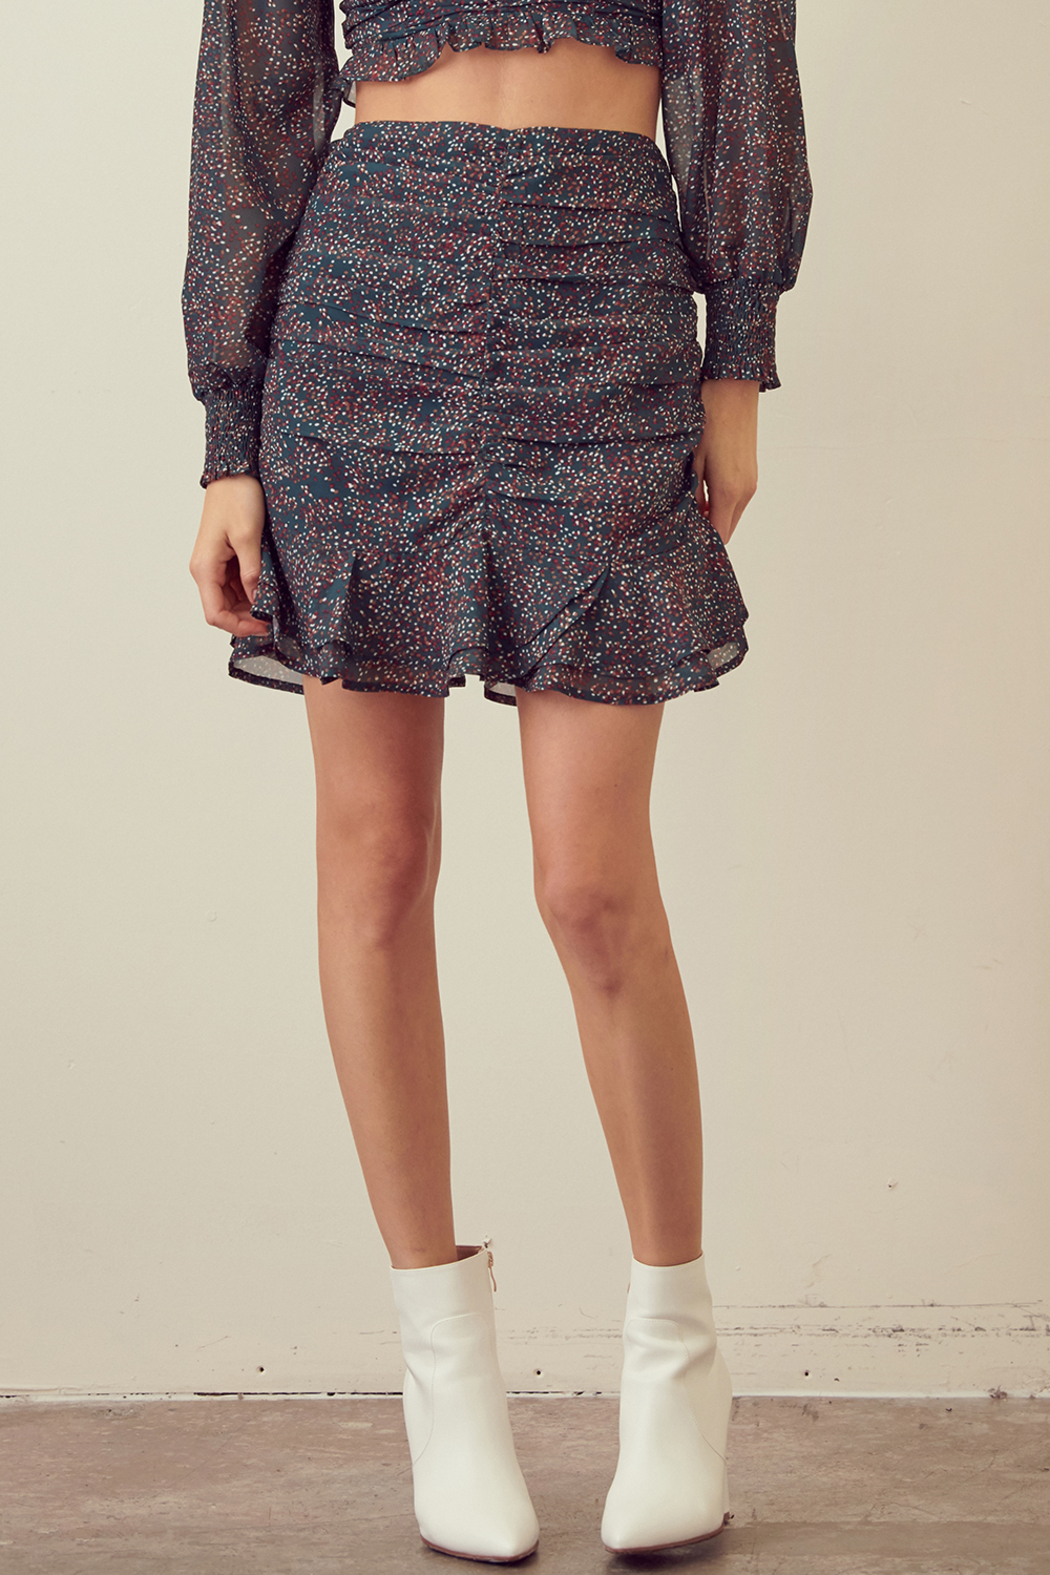 Skirt STORIA SPECKLED RUCHED RUFFLE MINI SKIRT - Main Image